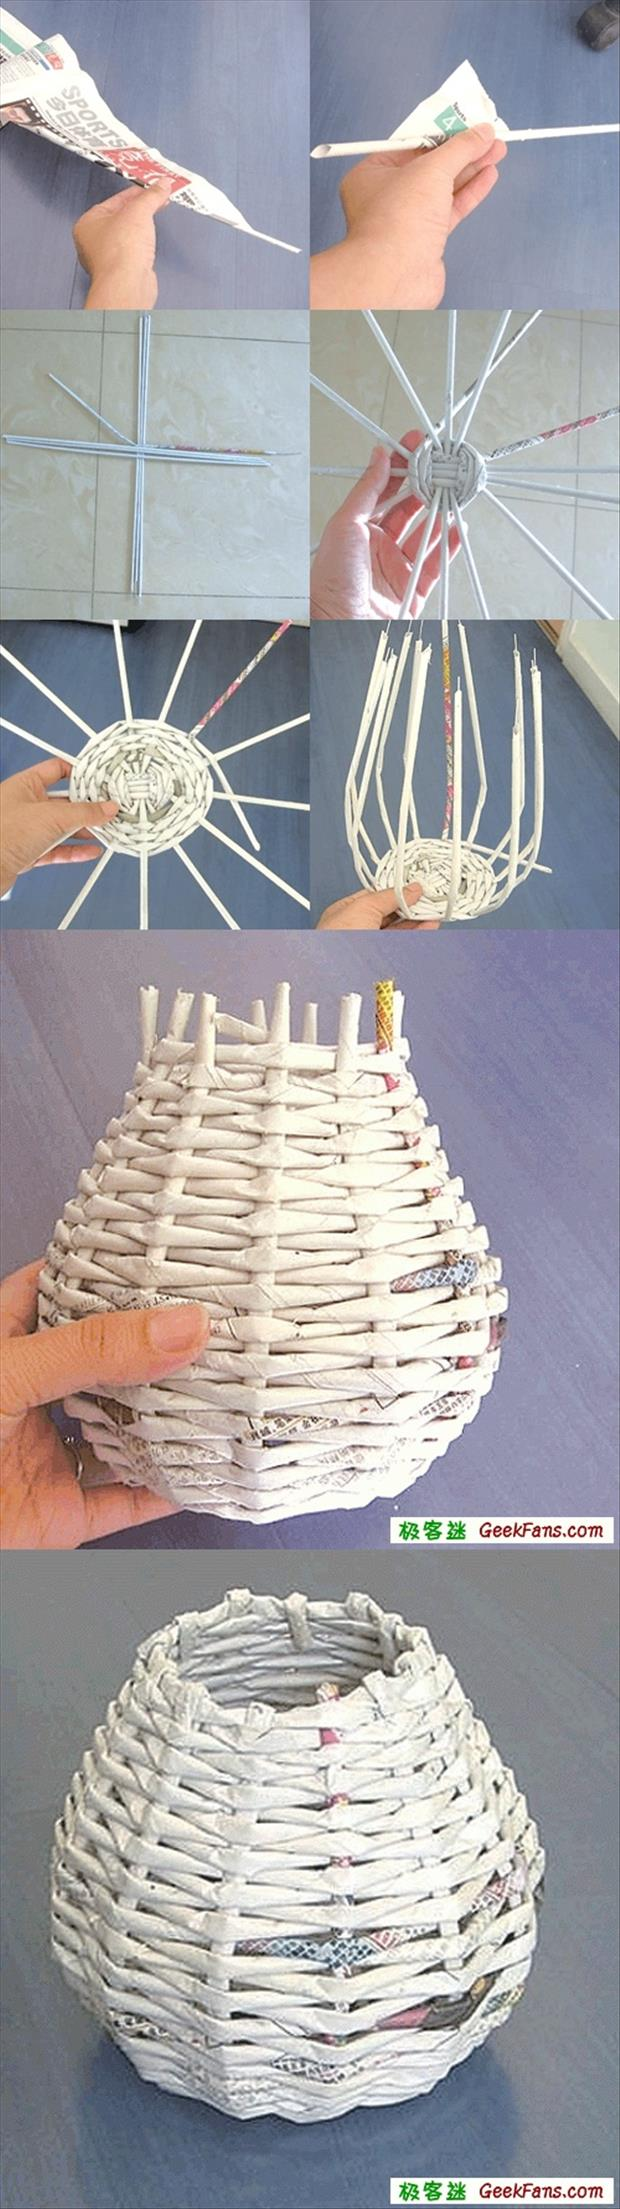 how to make a basket from newspapers fun crafts